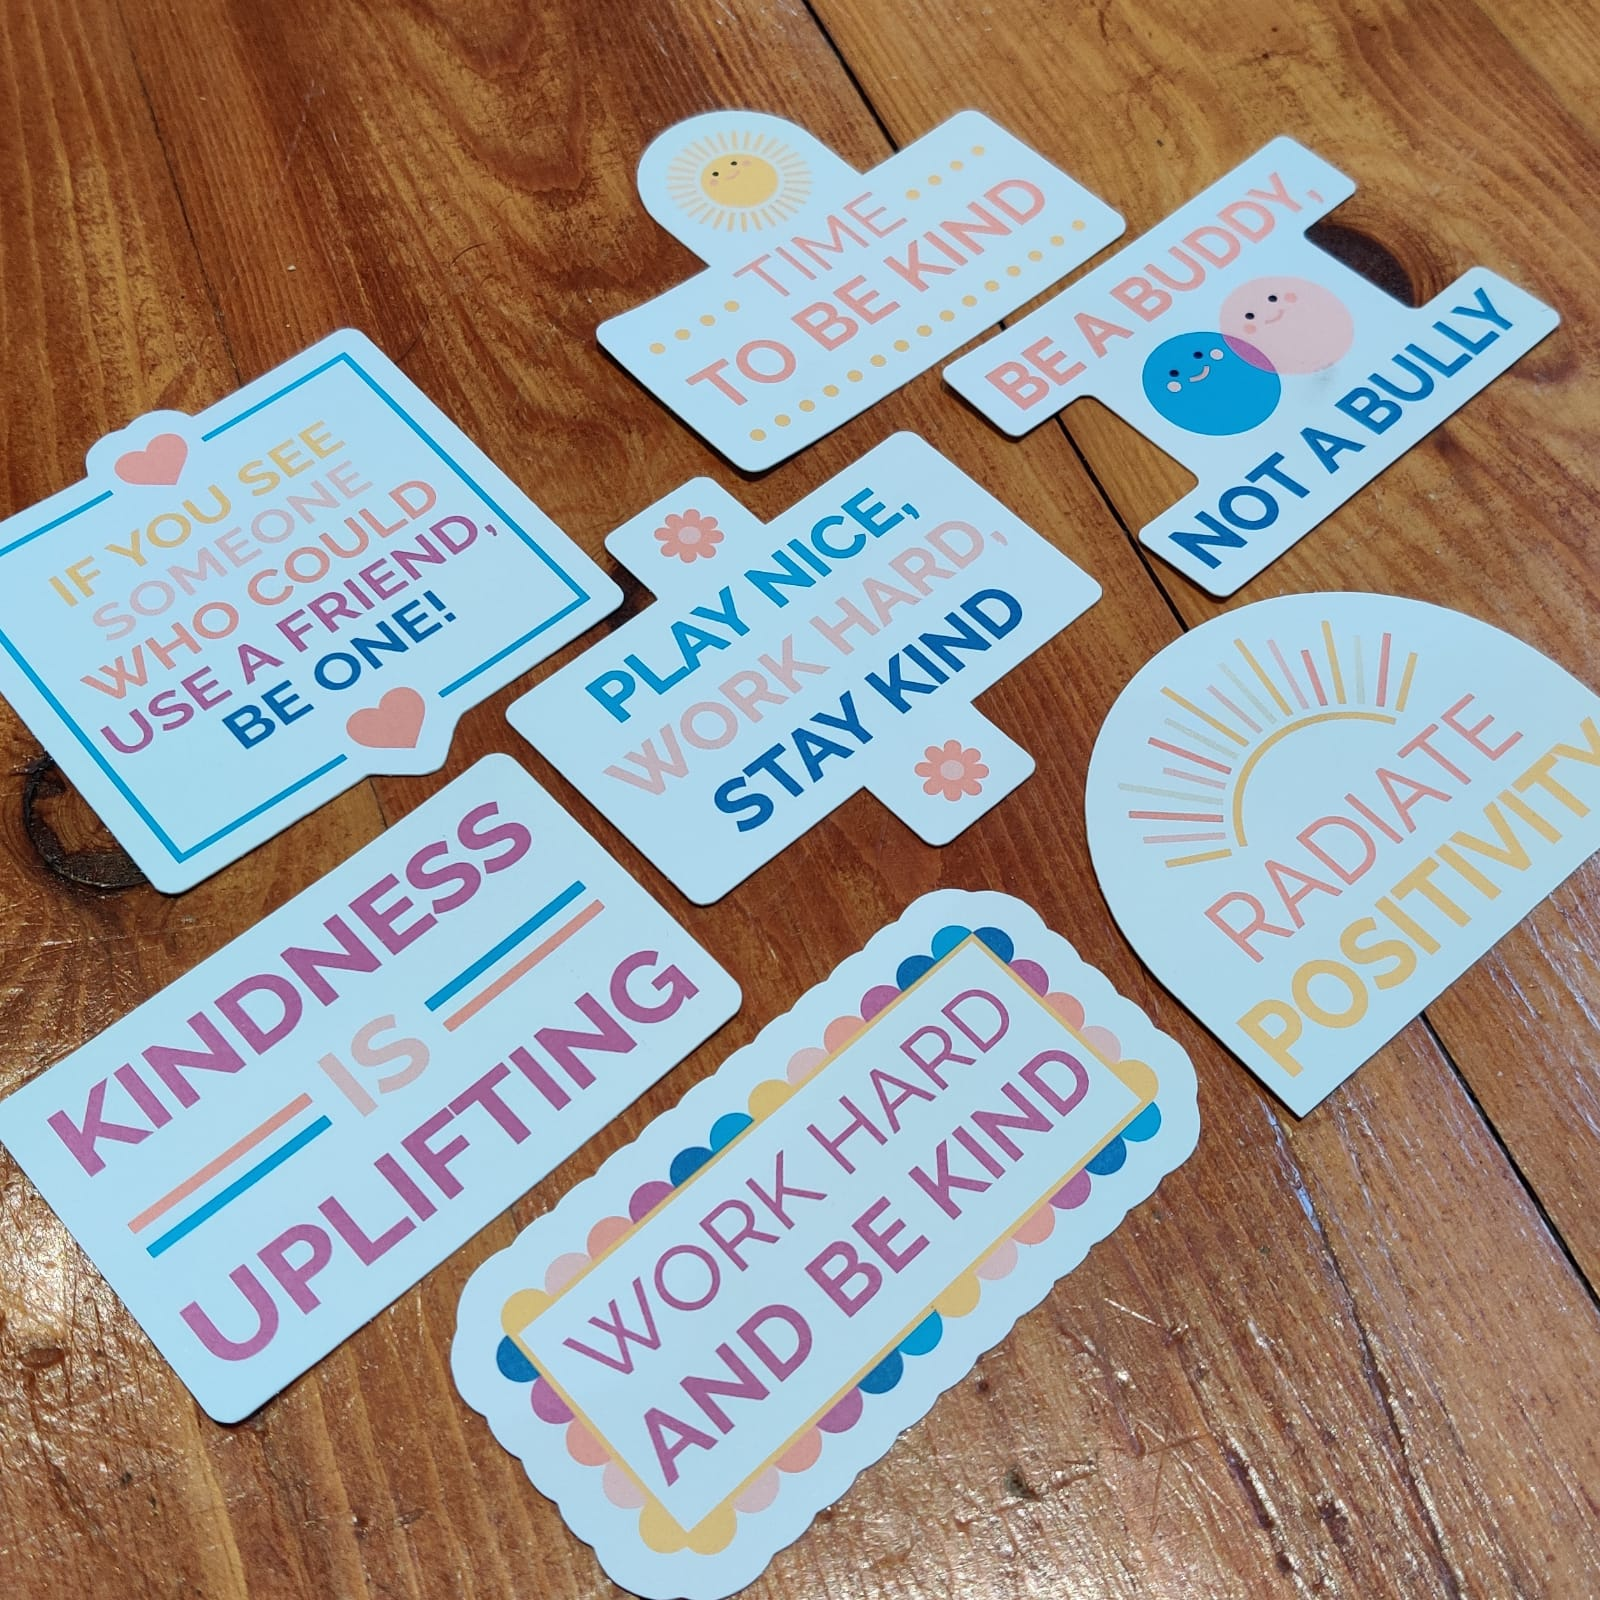 Kindness Positive Stickers   Mental Health Support   Positive Reminder   Encouragement   Positive Stickers   Anxiety   Charity Donation Kind Shop 3